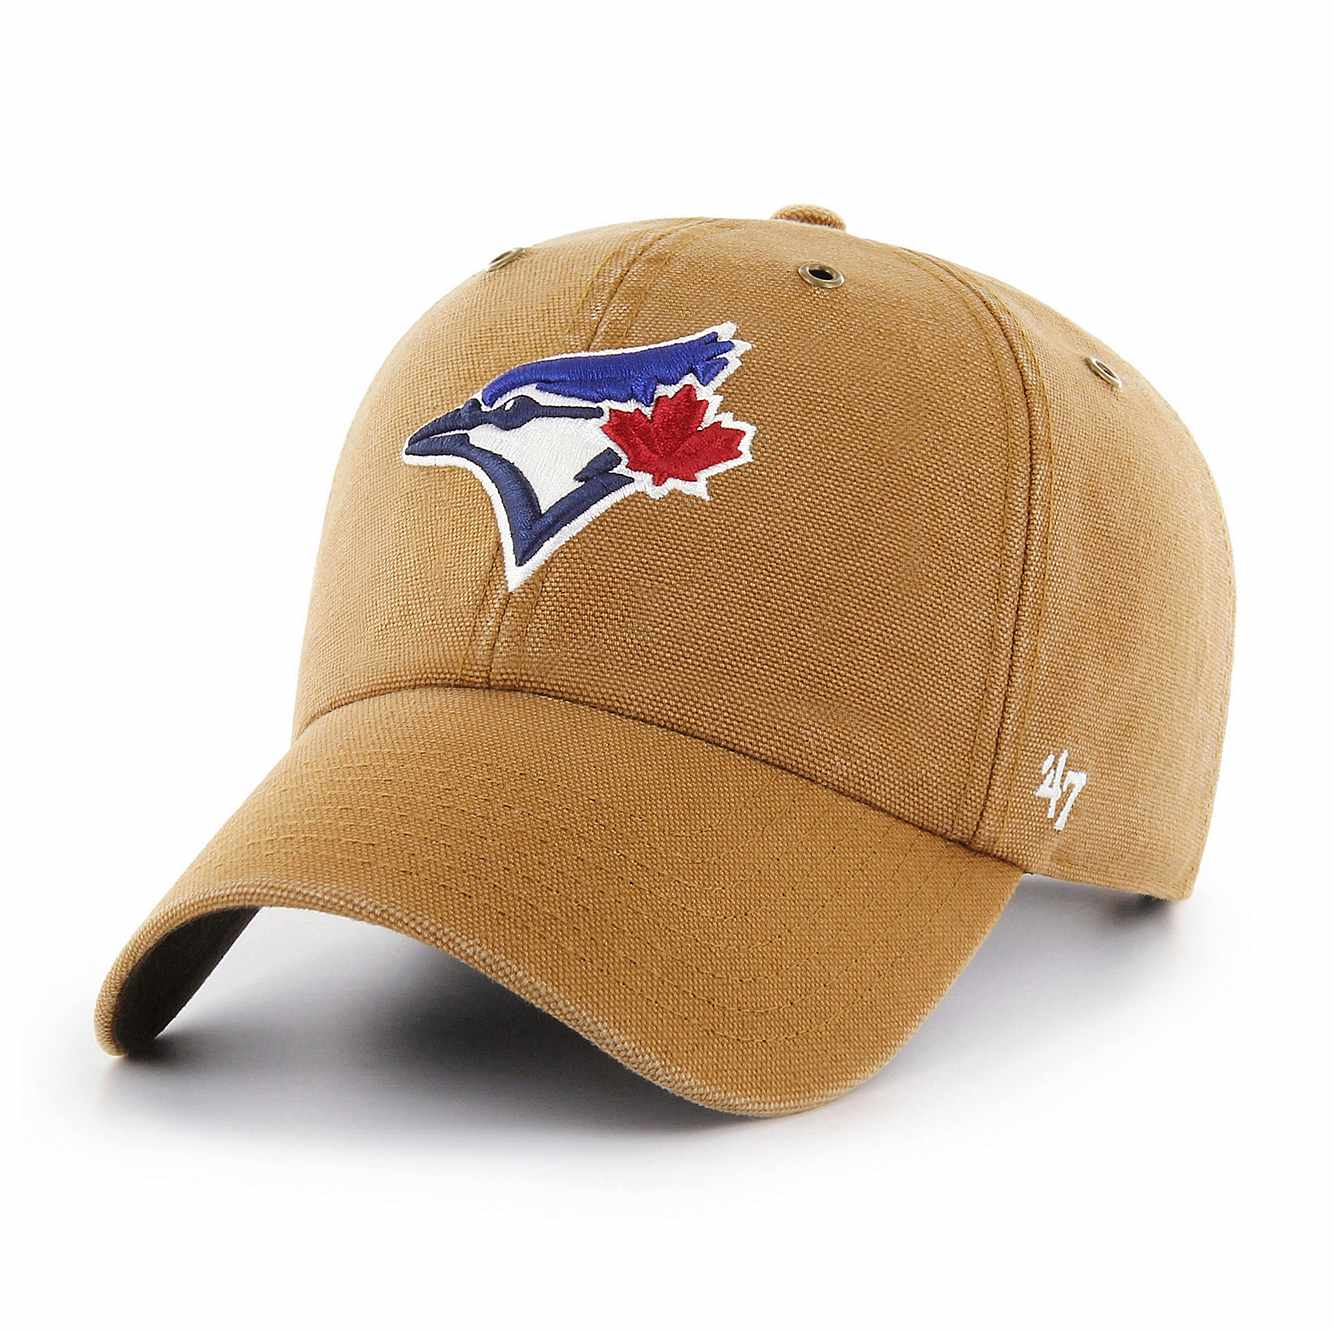 Picture of Toronto Blue Jays Carhartt x '47 Clean Up in Carhartt Brown